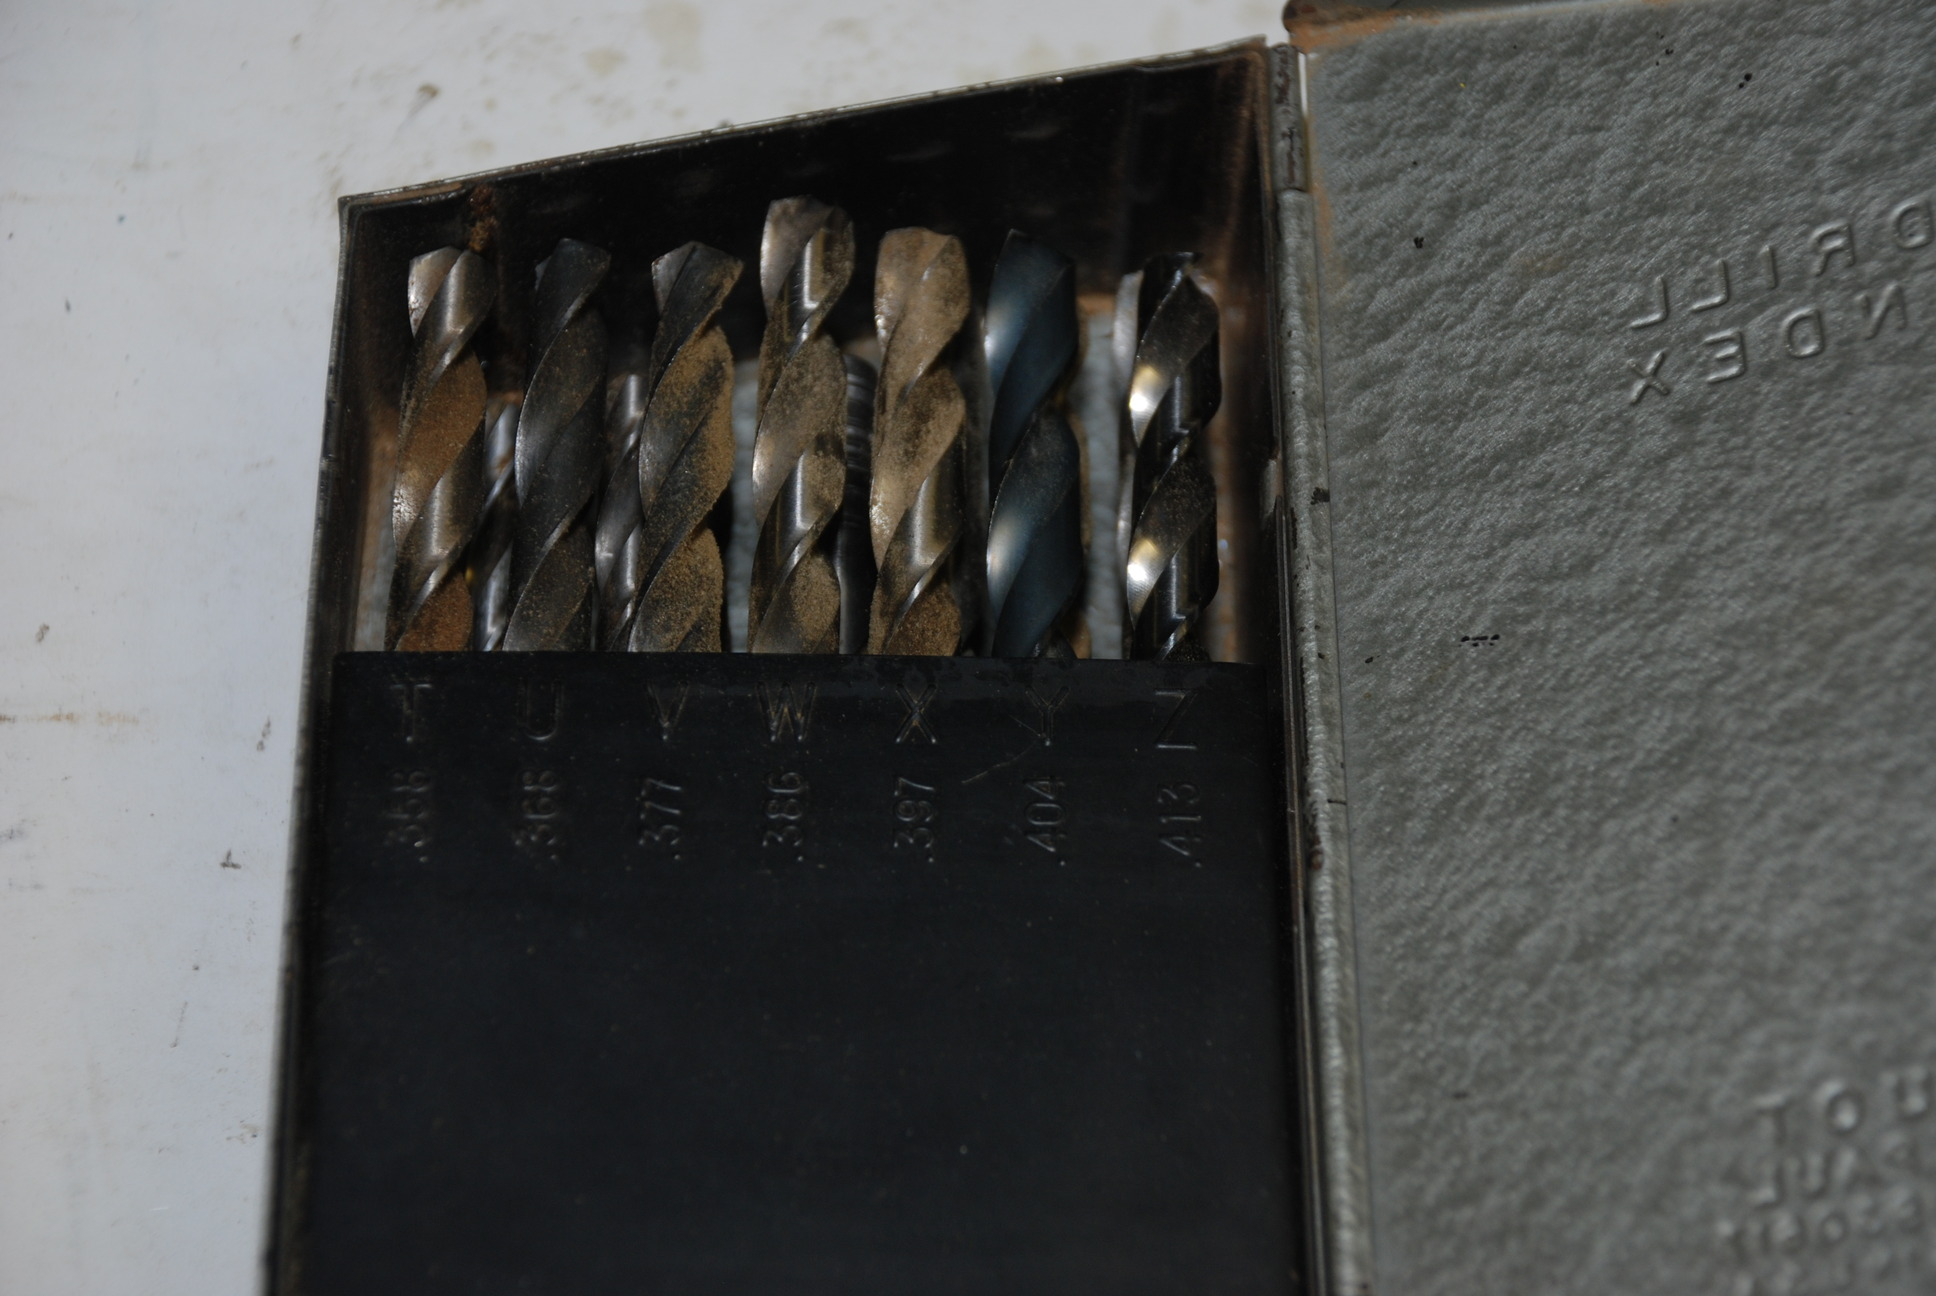 huot drill index with letter drill bit set incomplete inv With letter drill bits for sale